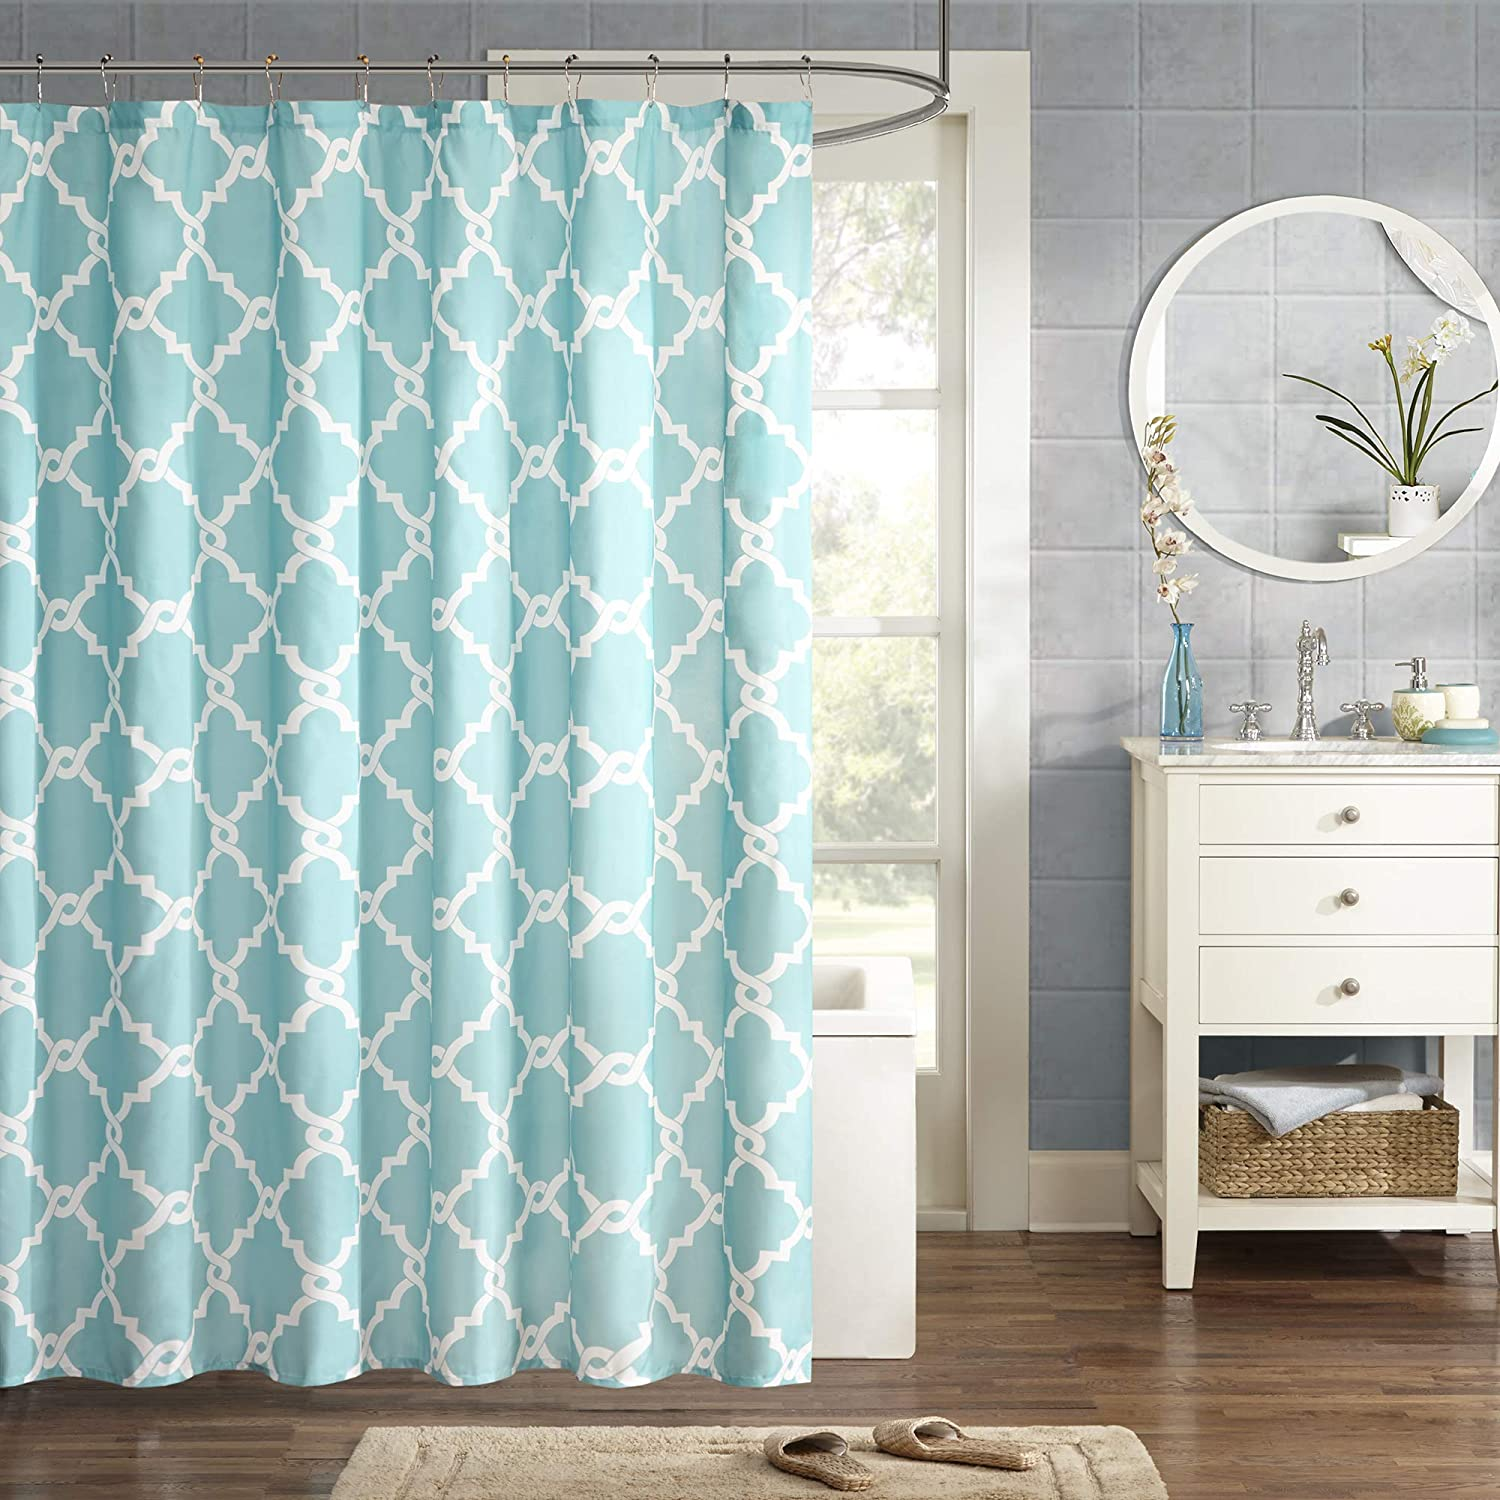 Light Teal and White Shower Curtain